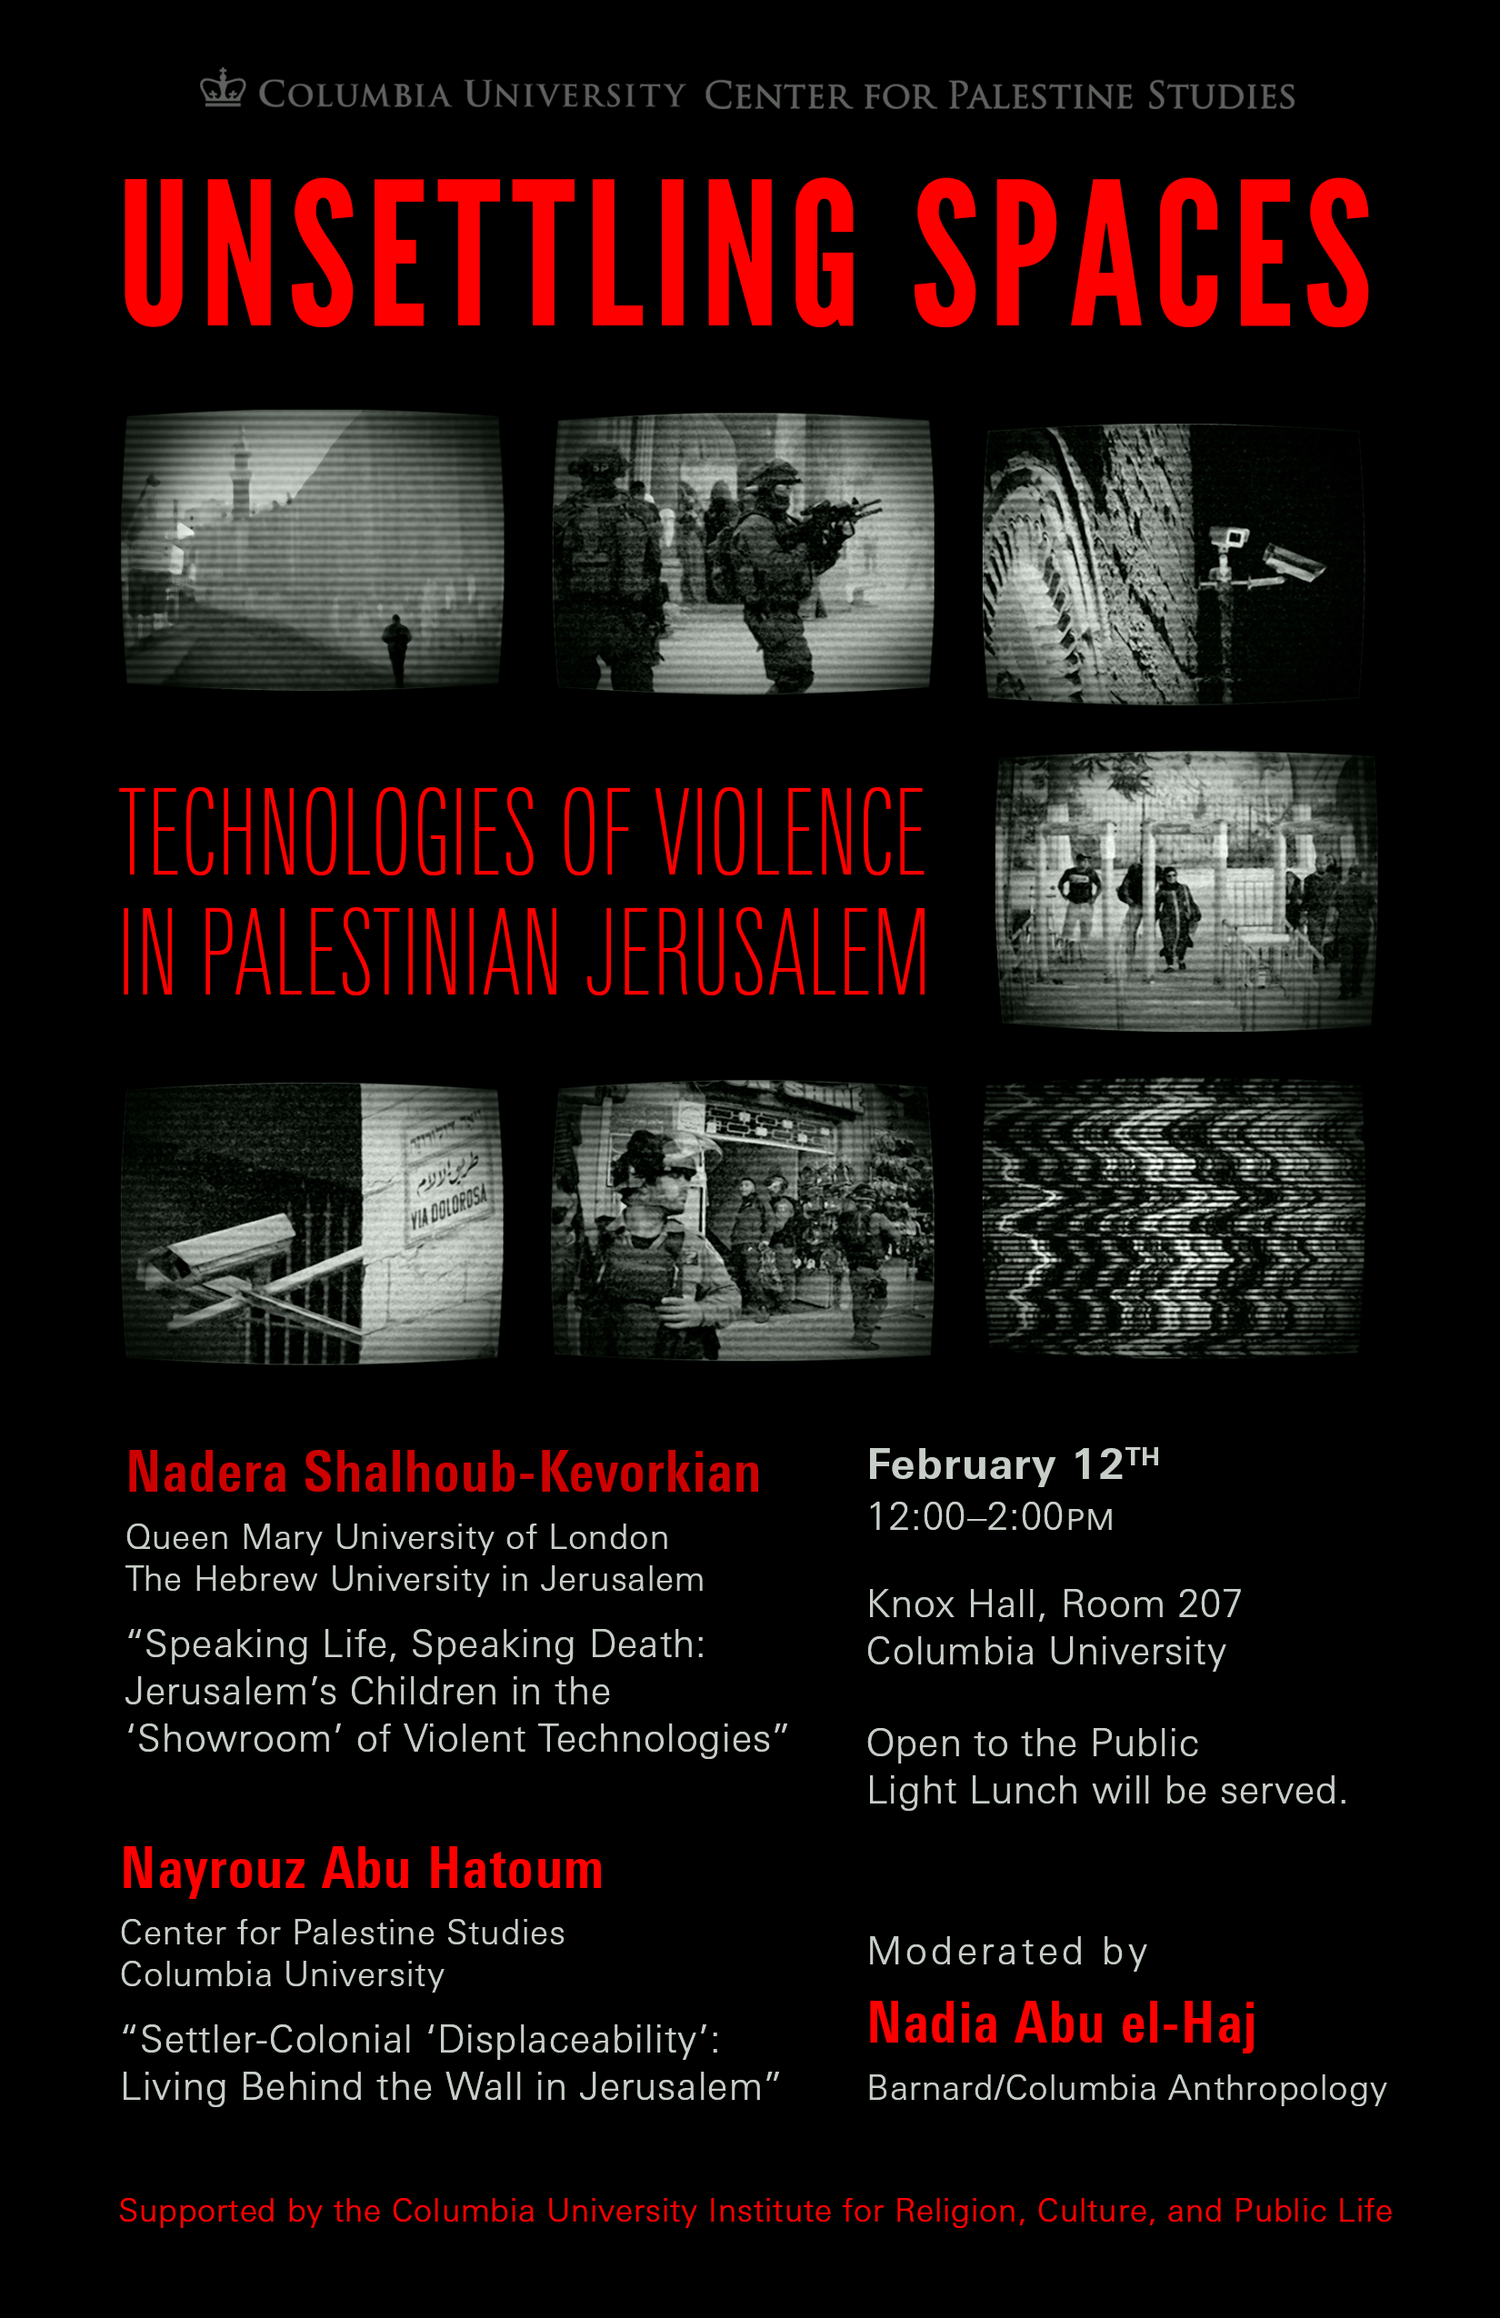 Unsettling Spaces: Technologies of Violence in Palestinian Jerusalem